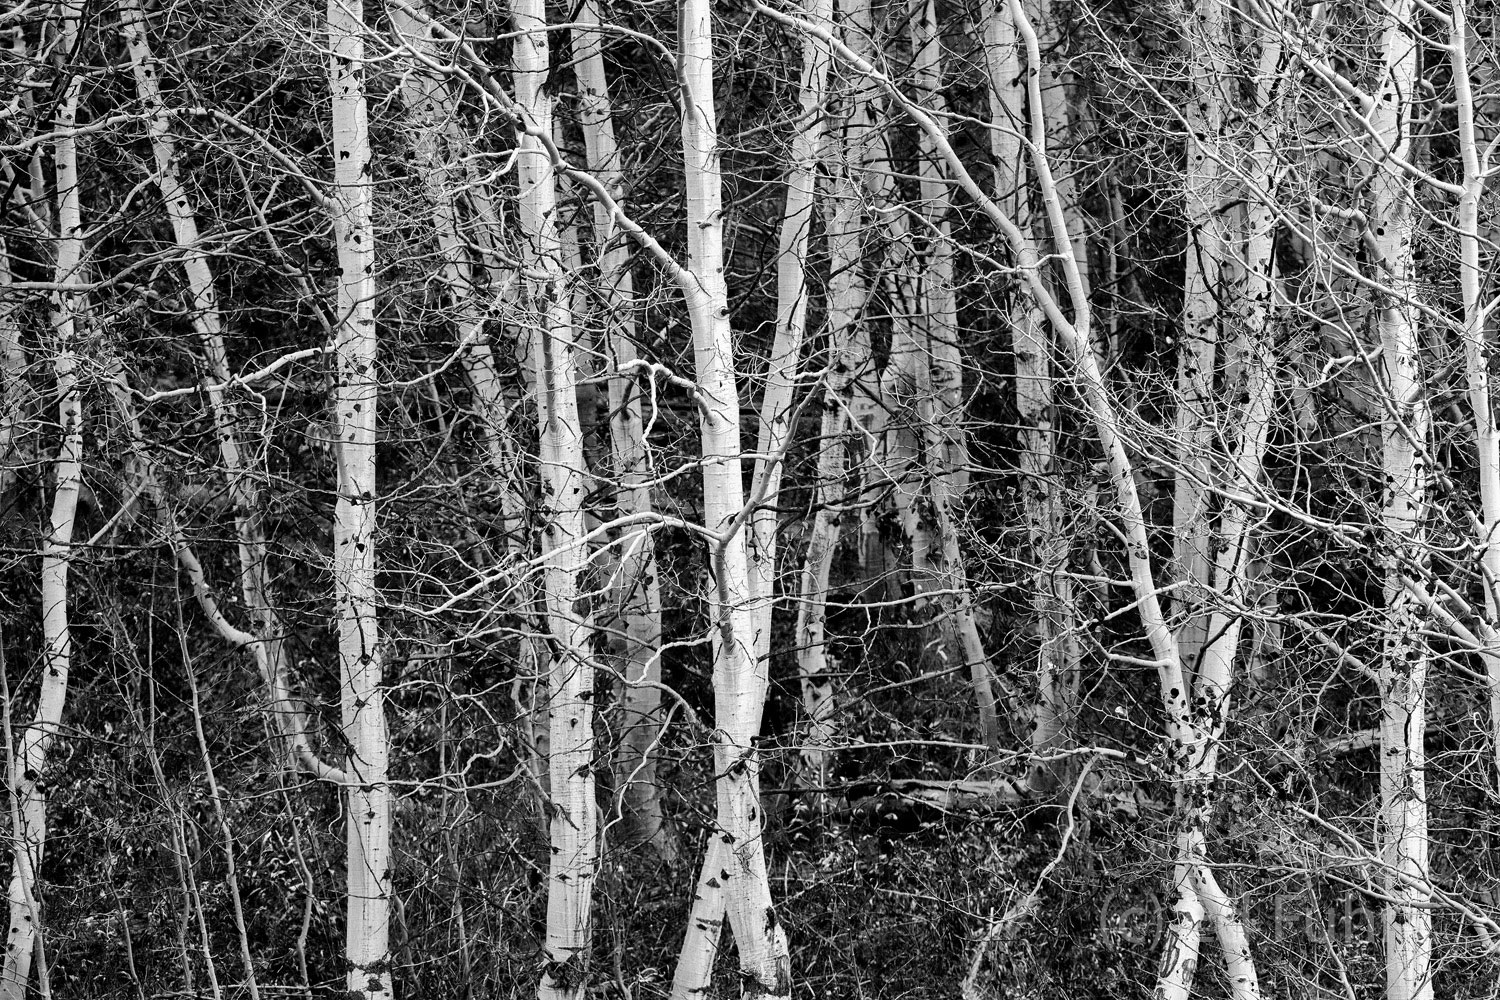 There is a timeless quality to aspen groves, especially when viewed without the glitter and distraction of autumn's glow.